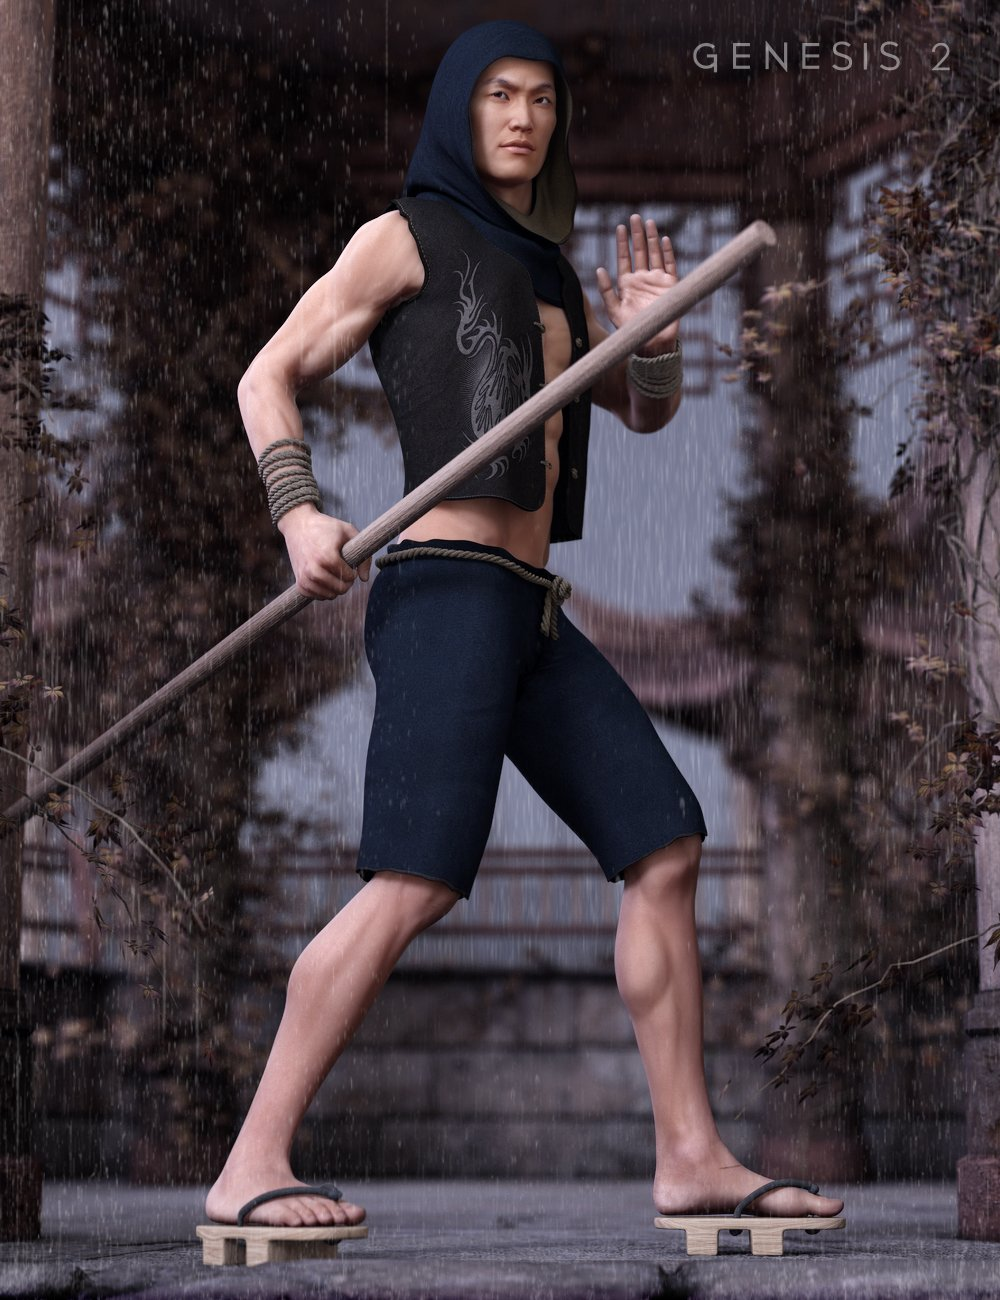 Min Woo for Genesis 2 Male(s) by: Sarsa, 3D Models by Daz 3D